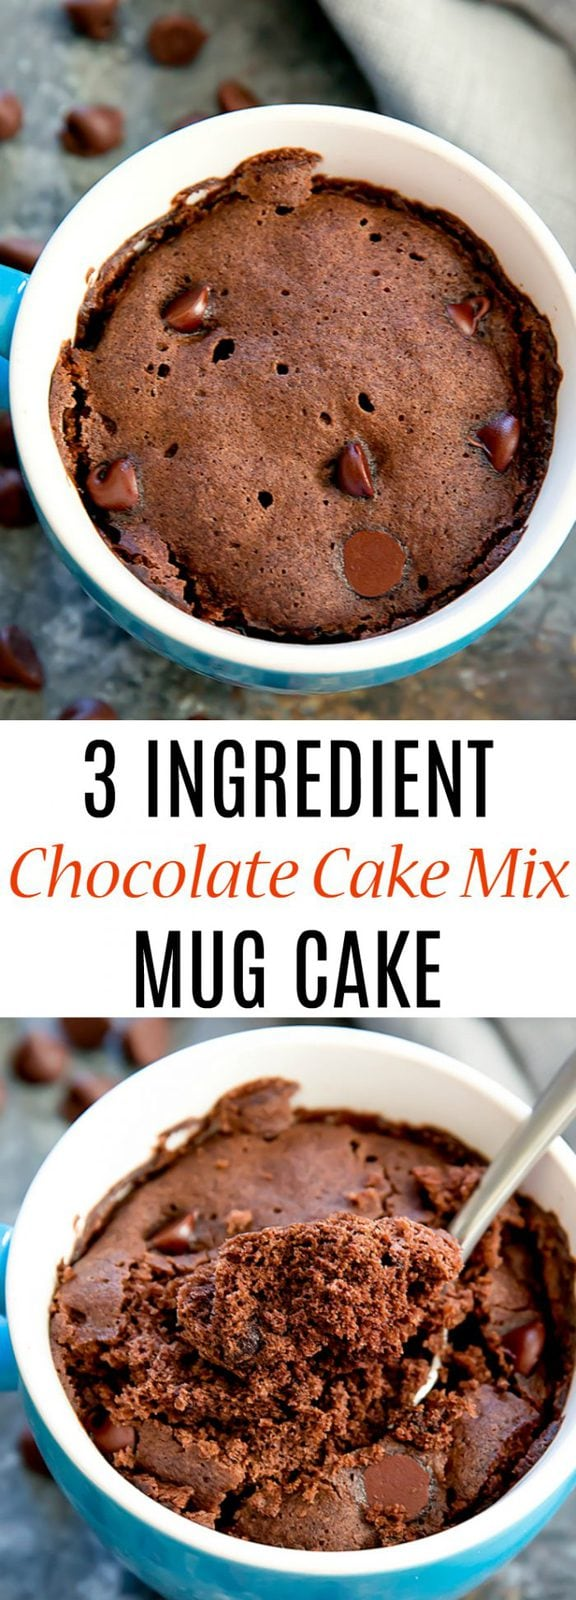 3 Ingredient Chocolate Cake Mix Mug Cake (Eggless)